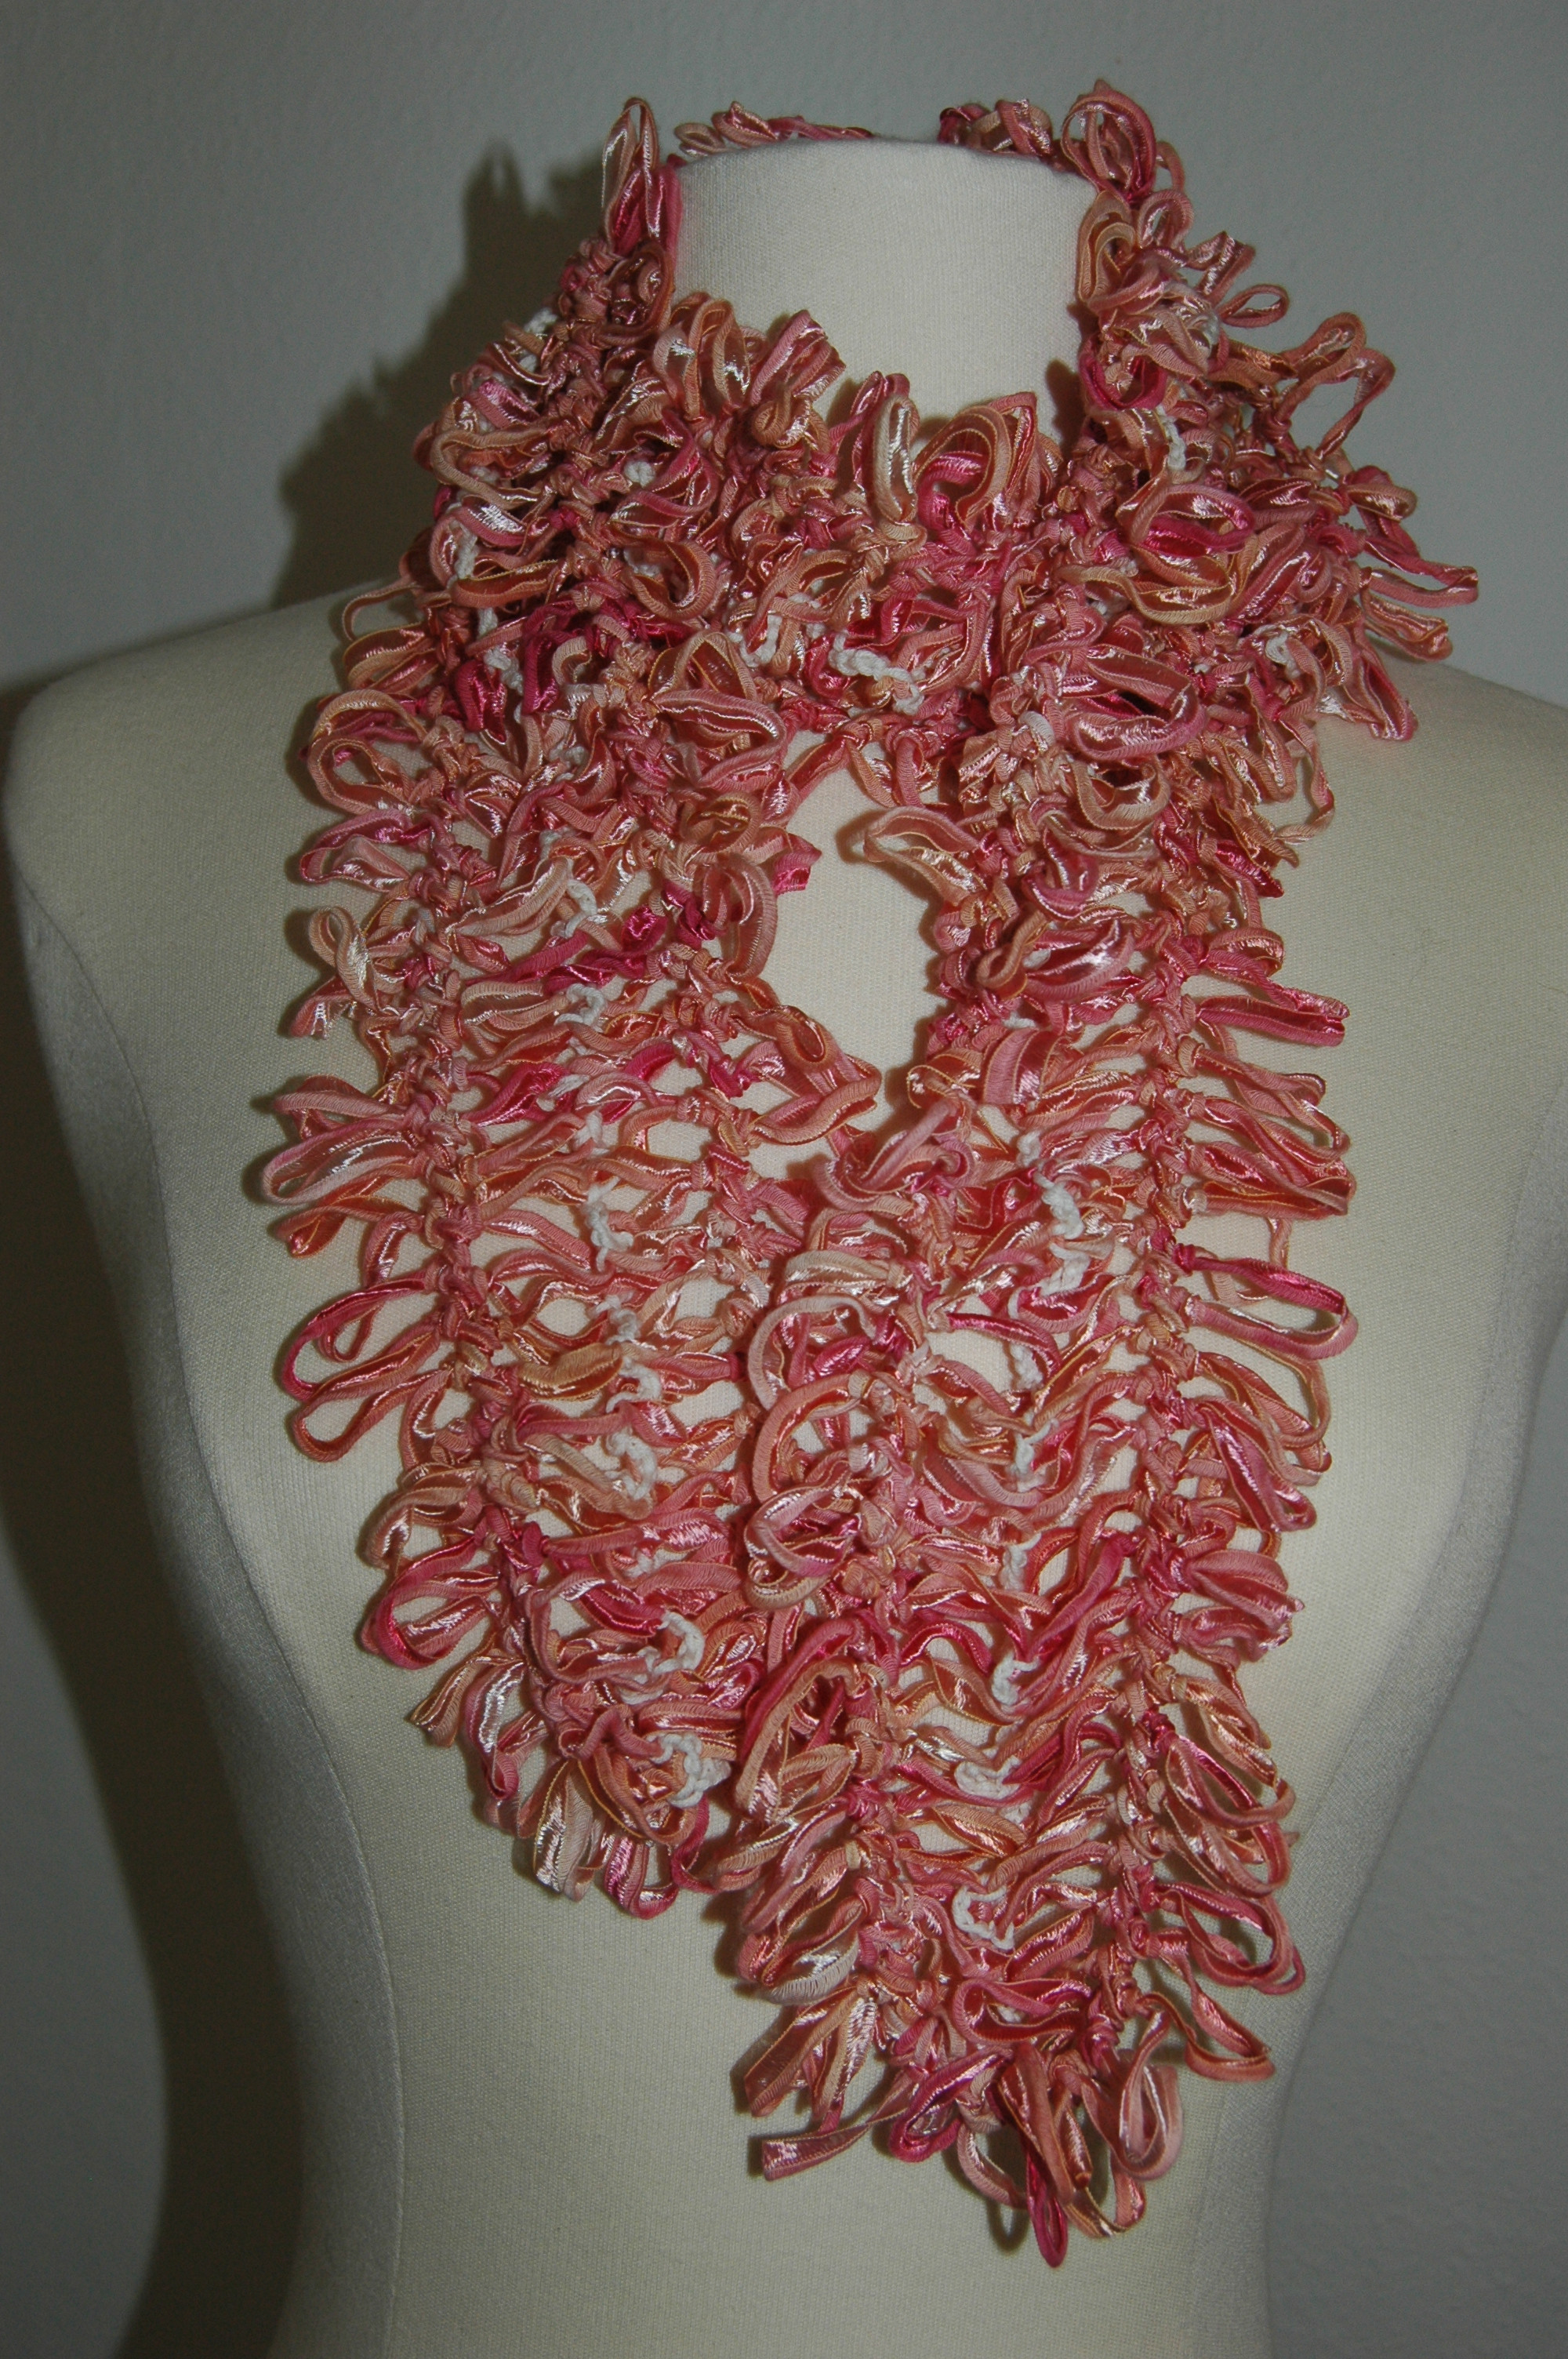 Crochet Scarf Fresh Simple Scarf Crochet Patterns – Easy Crochet Patterns Of Incredible 48 Images Crochet Scarf